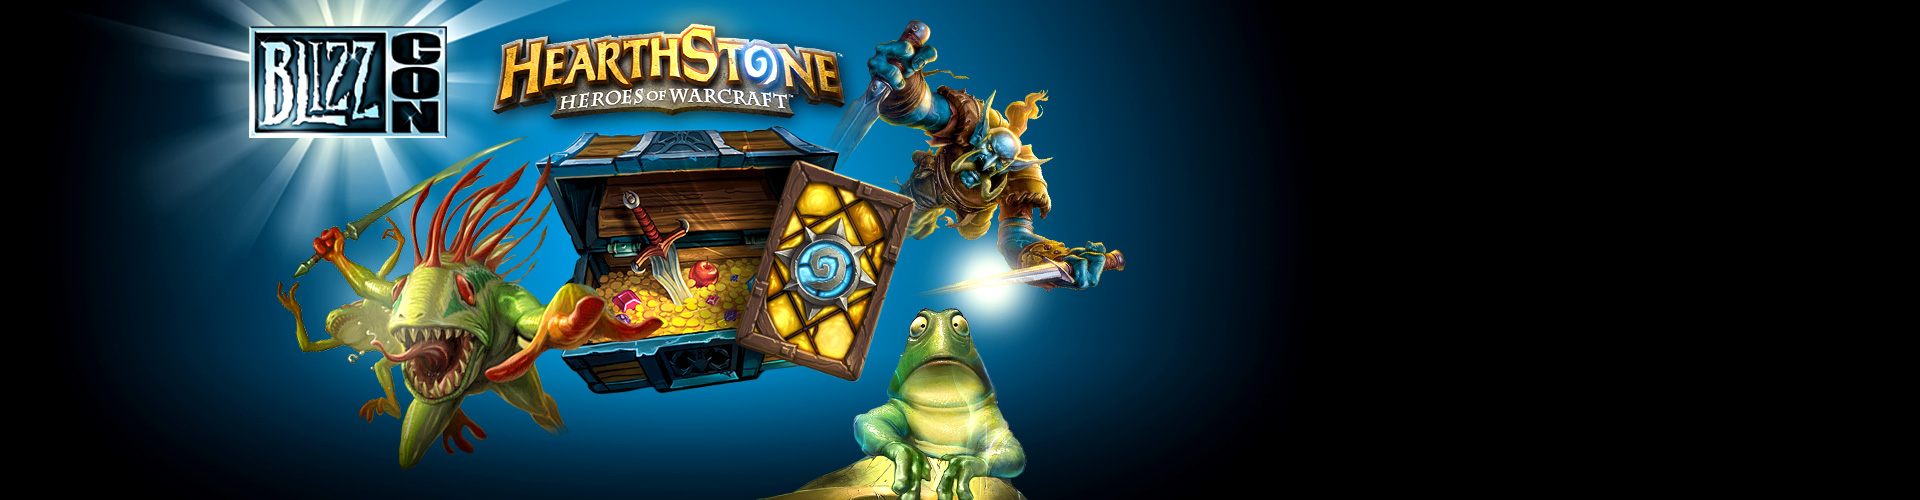 BlizzCon: Hearthstone Whats Next Panel - Alle Infos im Liveticker